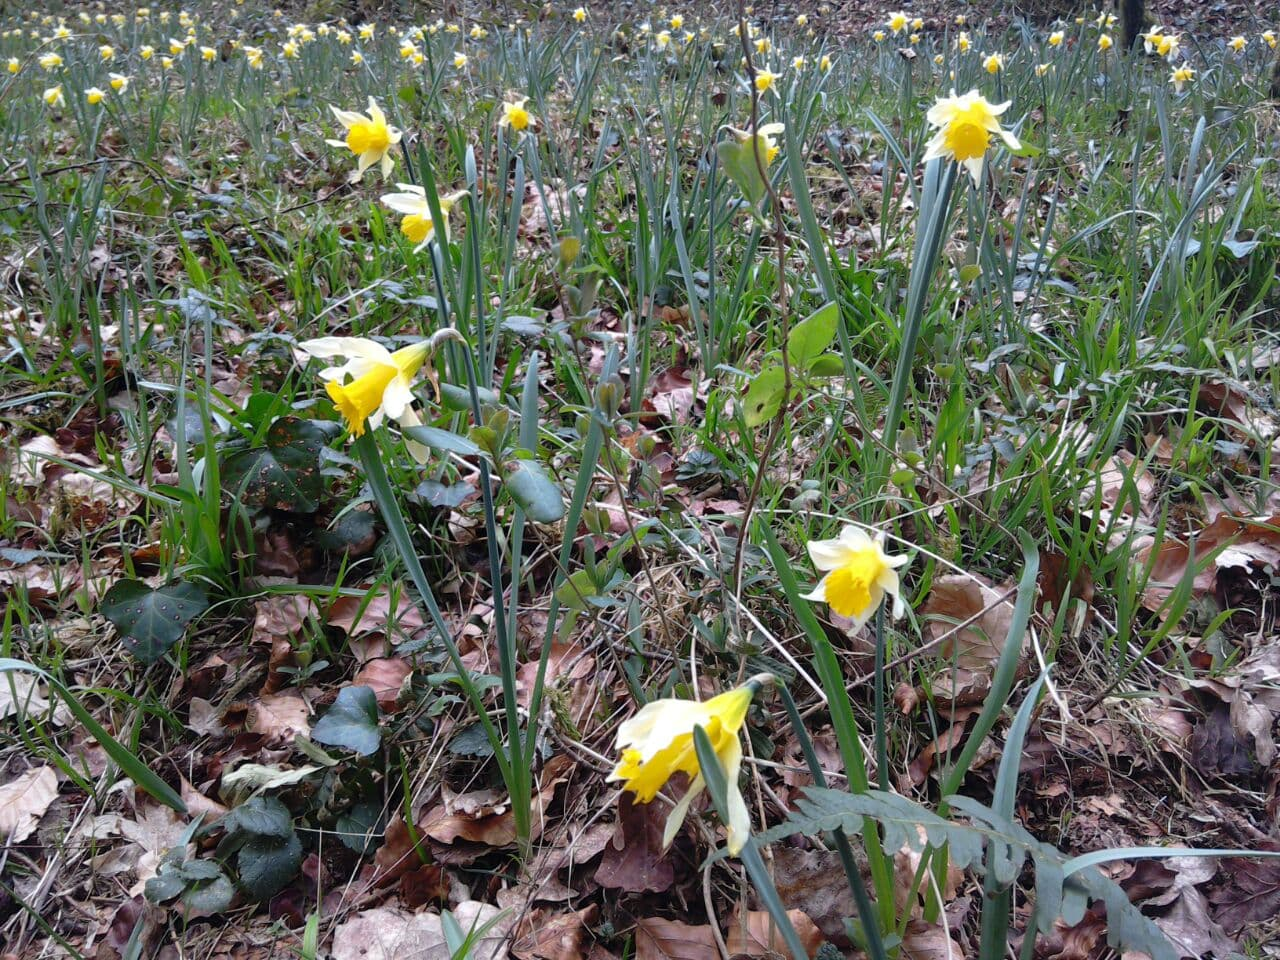 Wild daffodils in the Cresme Valley, Calvados, Normandy